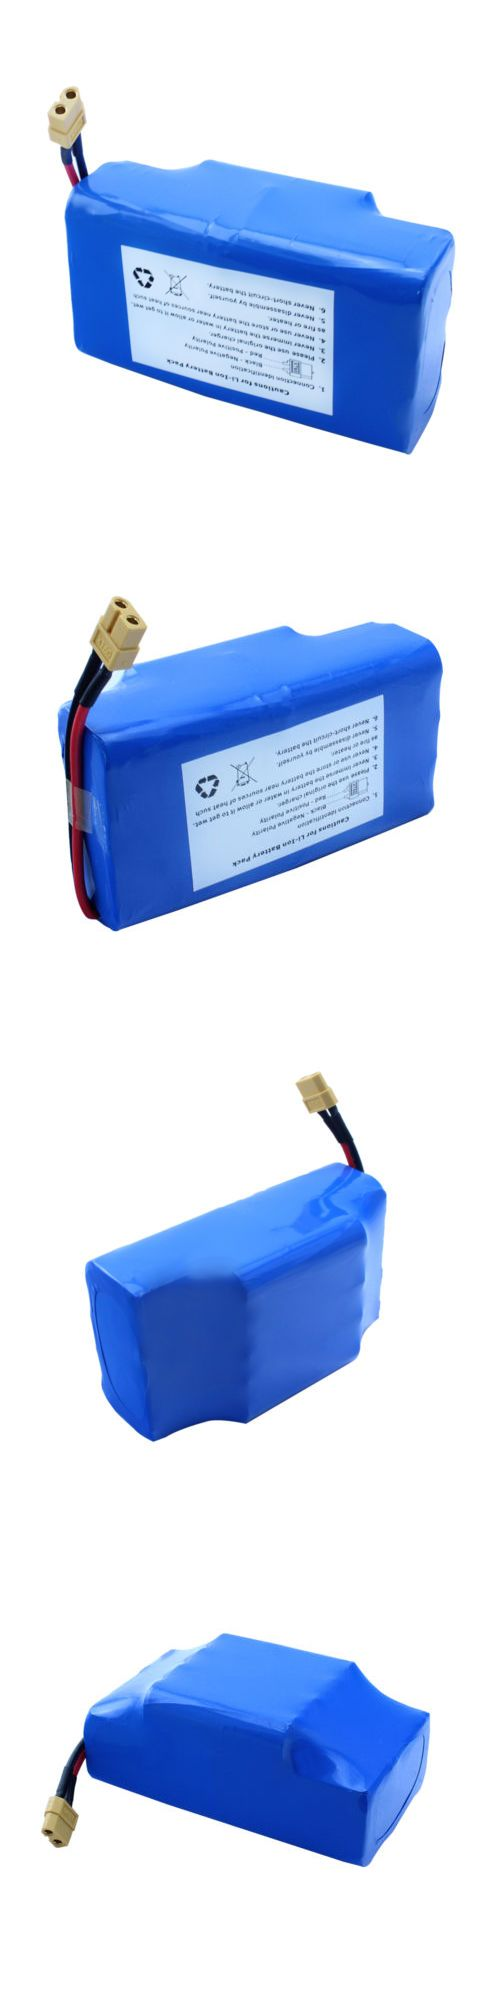 Parts and Accessories 11332: Li-Ion Battery Part 36V 4.0Ah 158W For 2 Wheels Self- Balancing Electric Cycle BUY IT NOW ONLY: $53.09